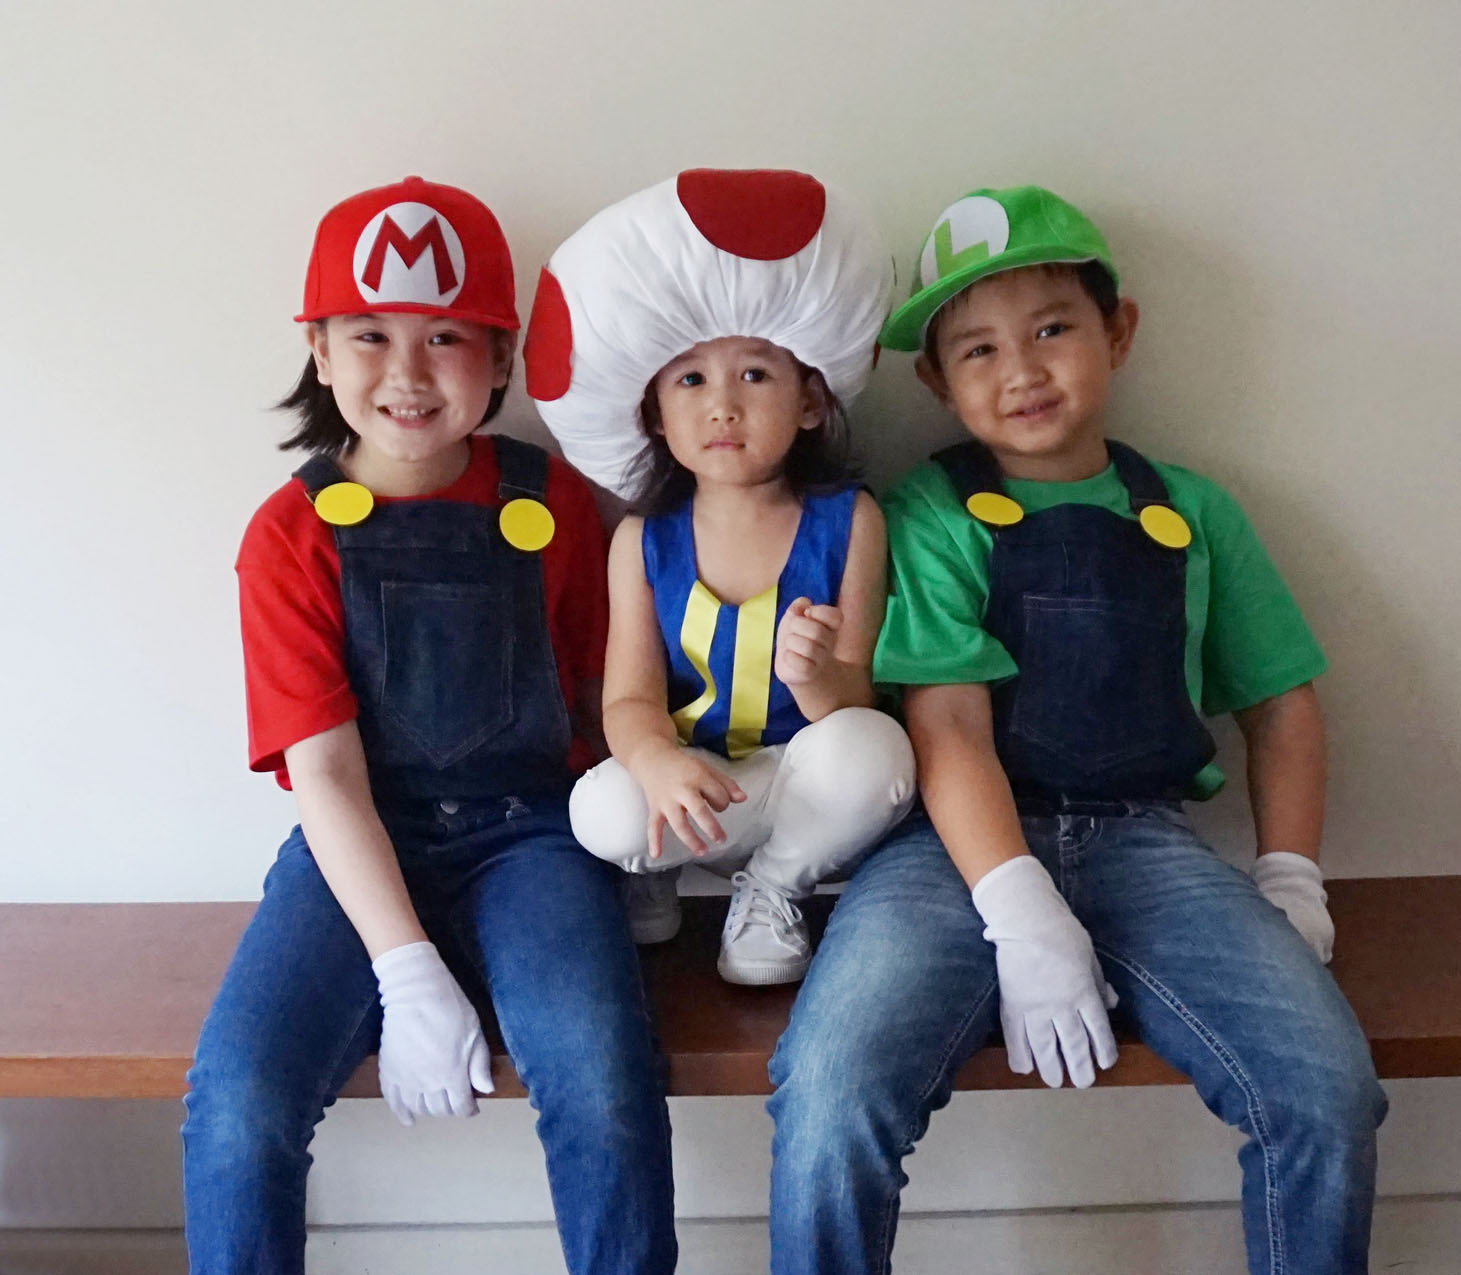 Best ideas about Mario DIY Costume . Save or Pin MrsMommyHolic DIY Mario Bros and Toad Costume Now.